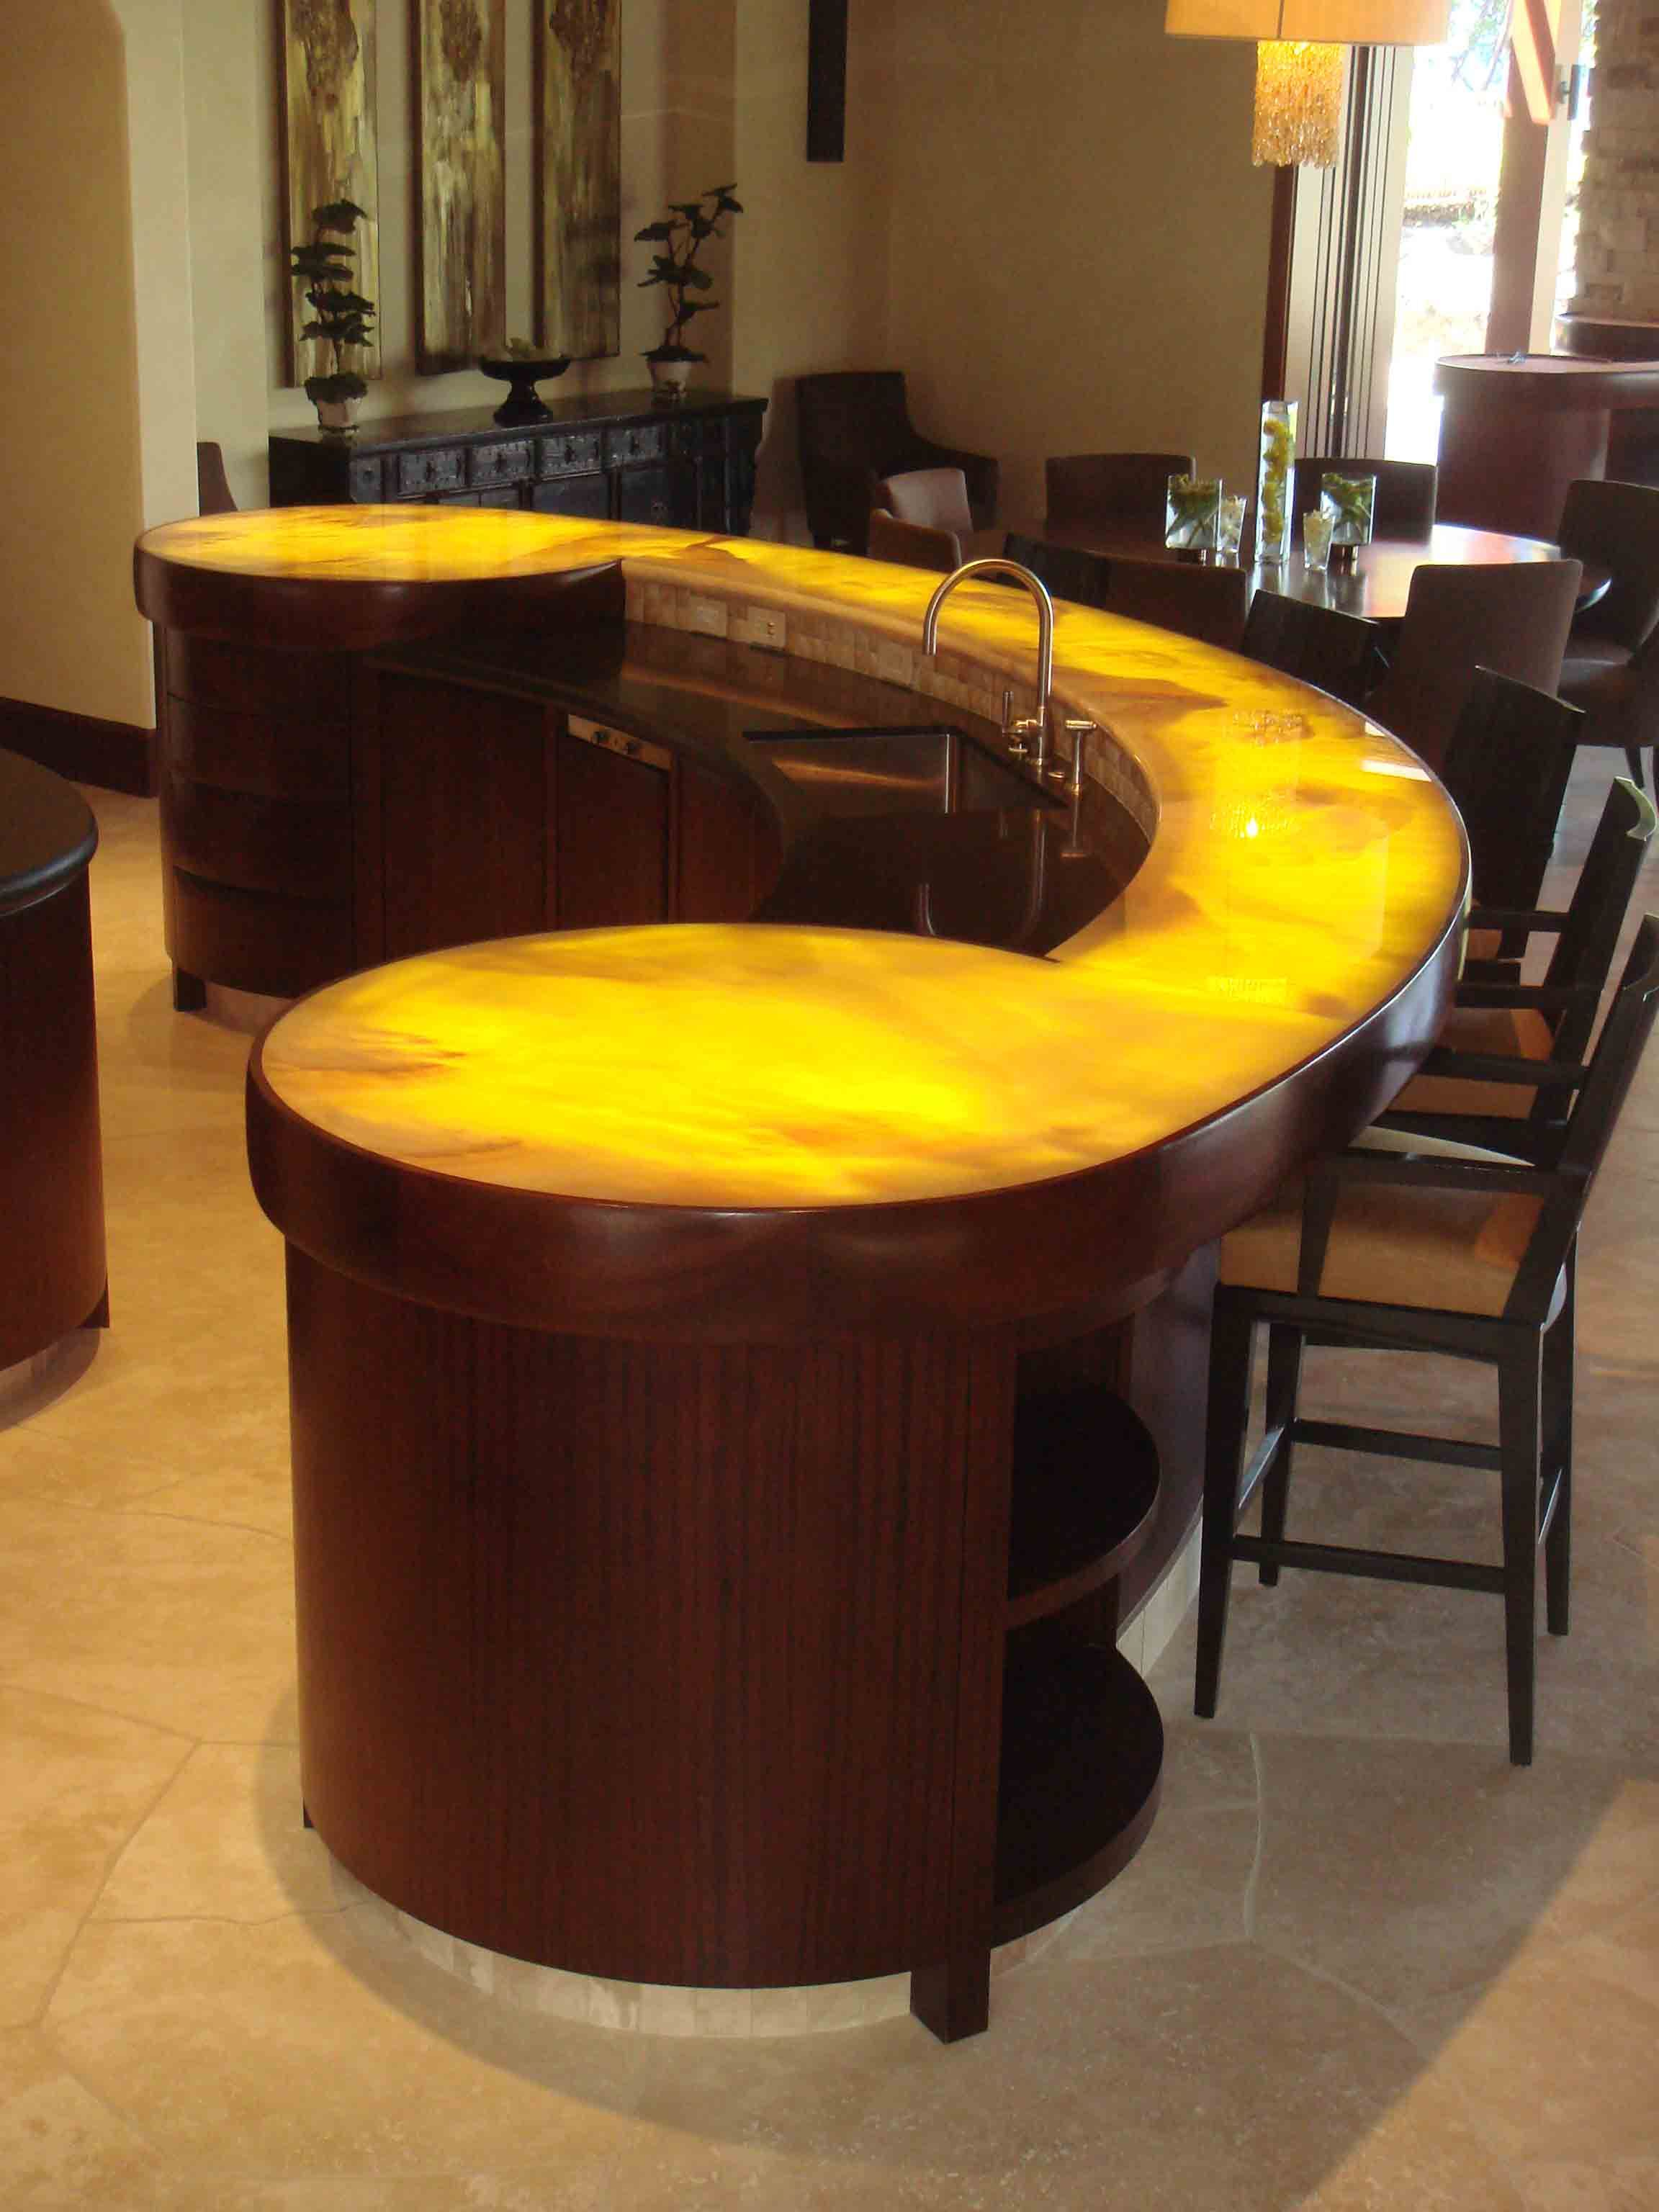 Fetching modern bar counter designs for home design with for Wooden bar design